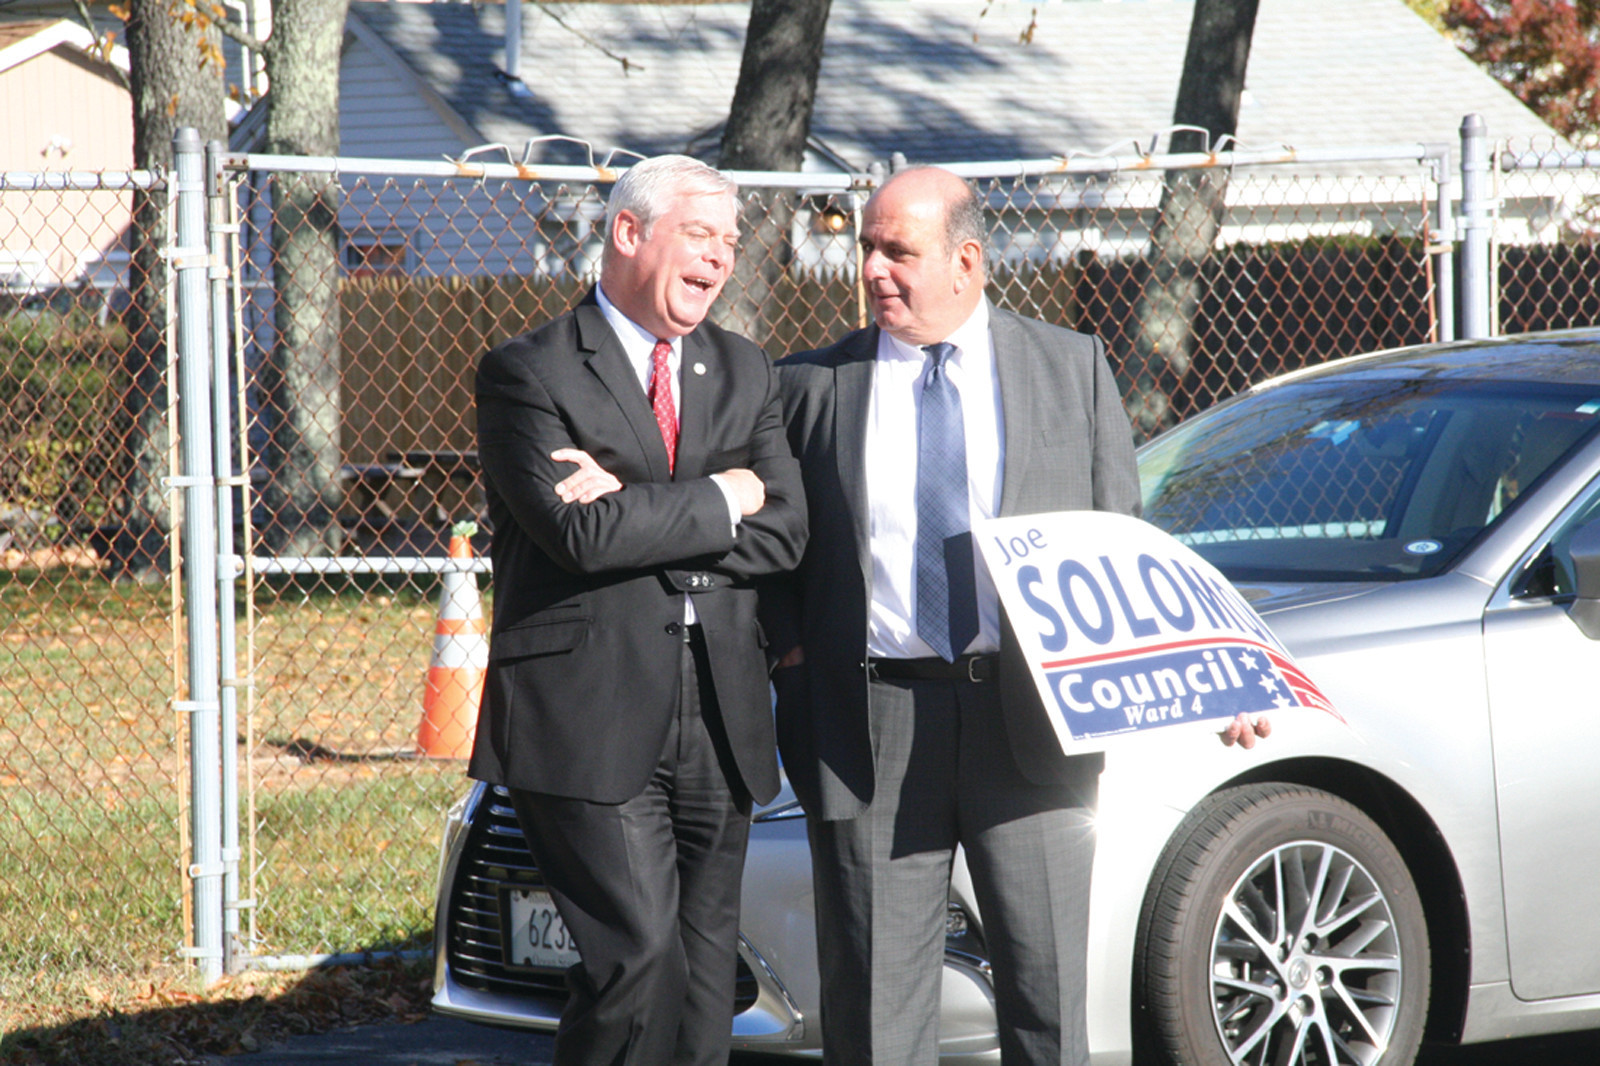 POLL TALK: Mayor Avedisian and Ward 4 Councilman Joseph Solomon talk outside the Shields Post polling location in Conimicut.